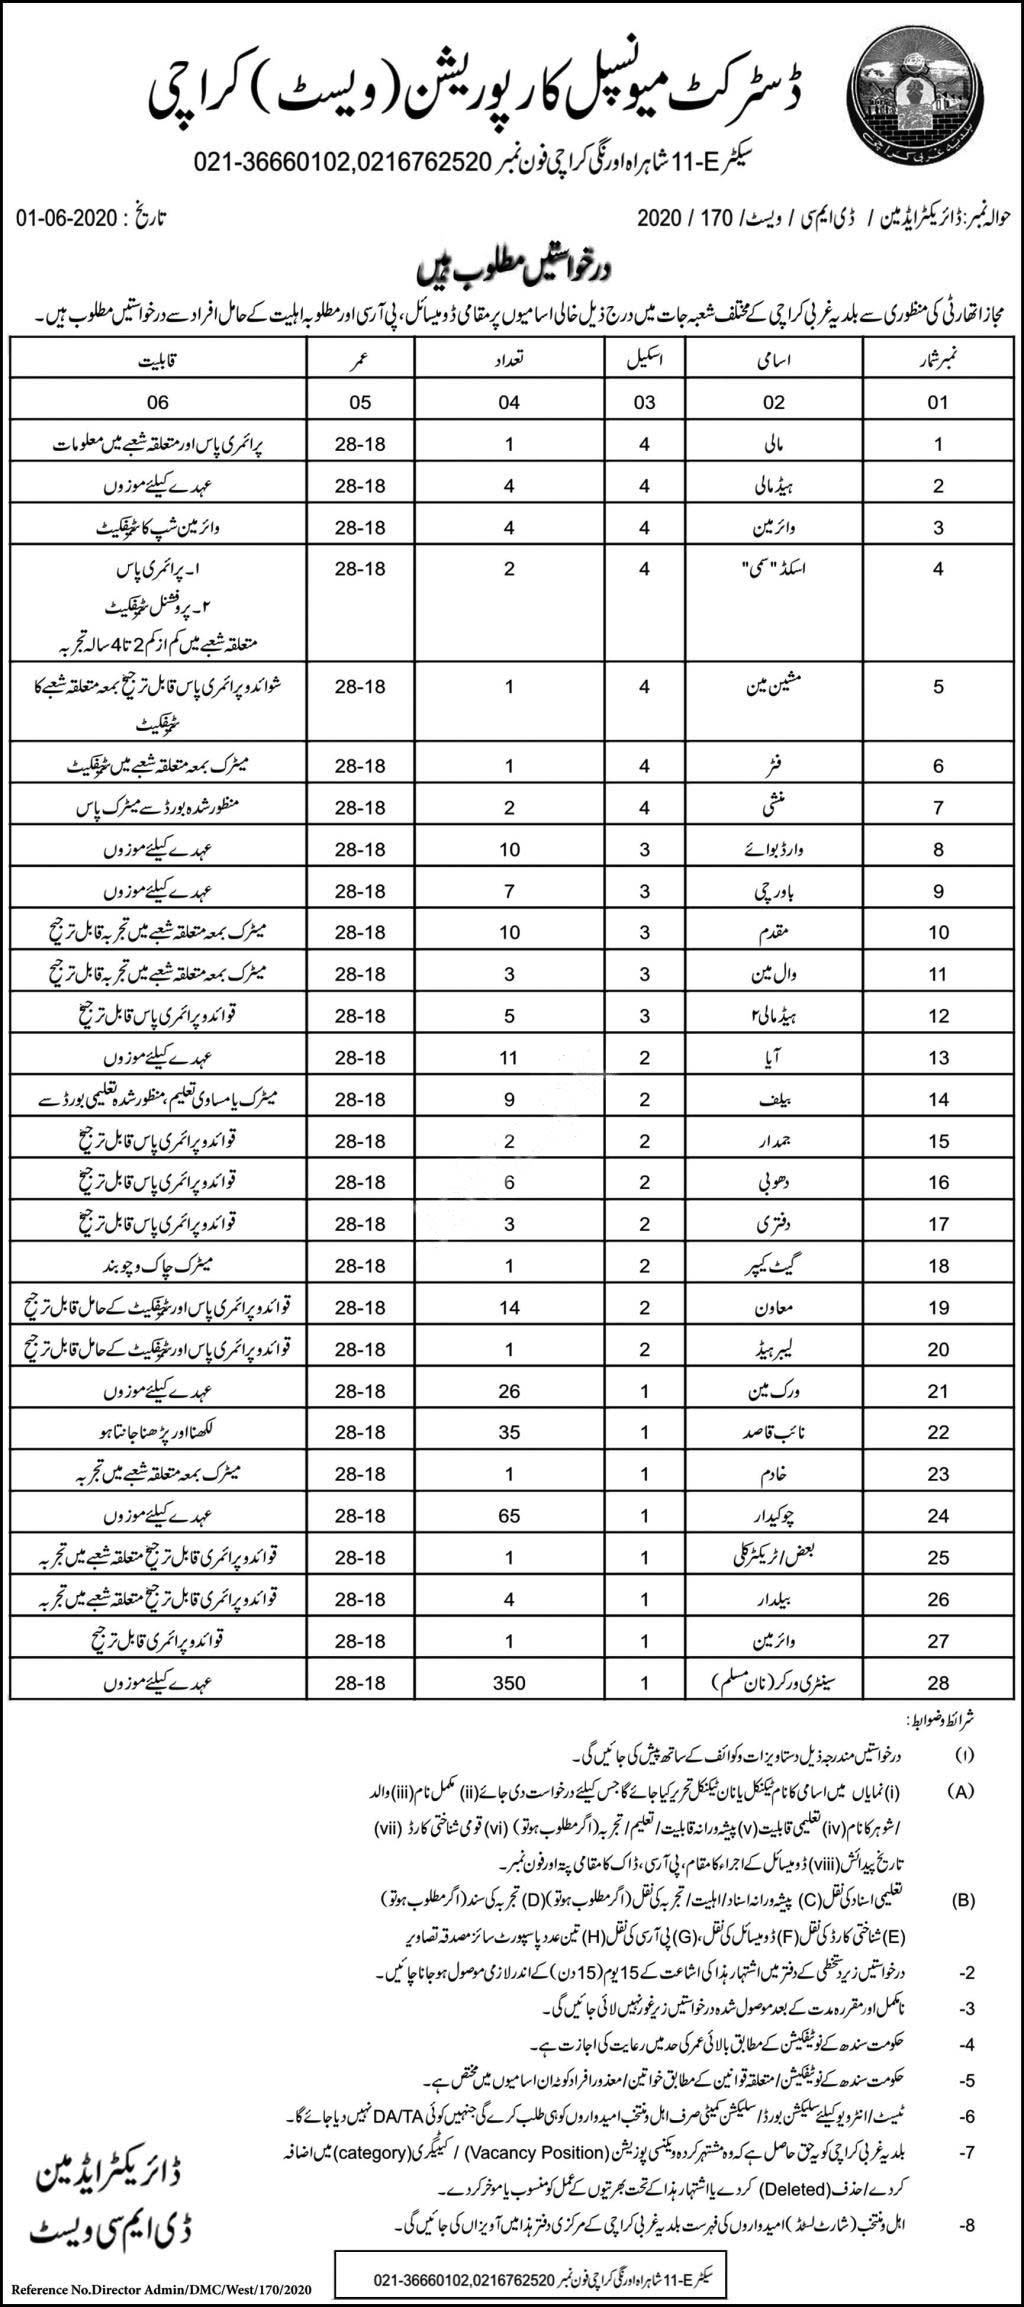 District Municipal Corporation Dmc West Karachi Jobs 2020 Latest